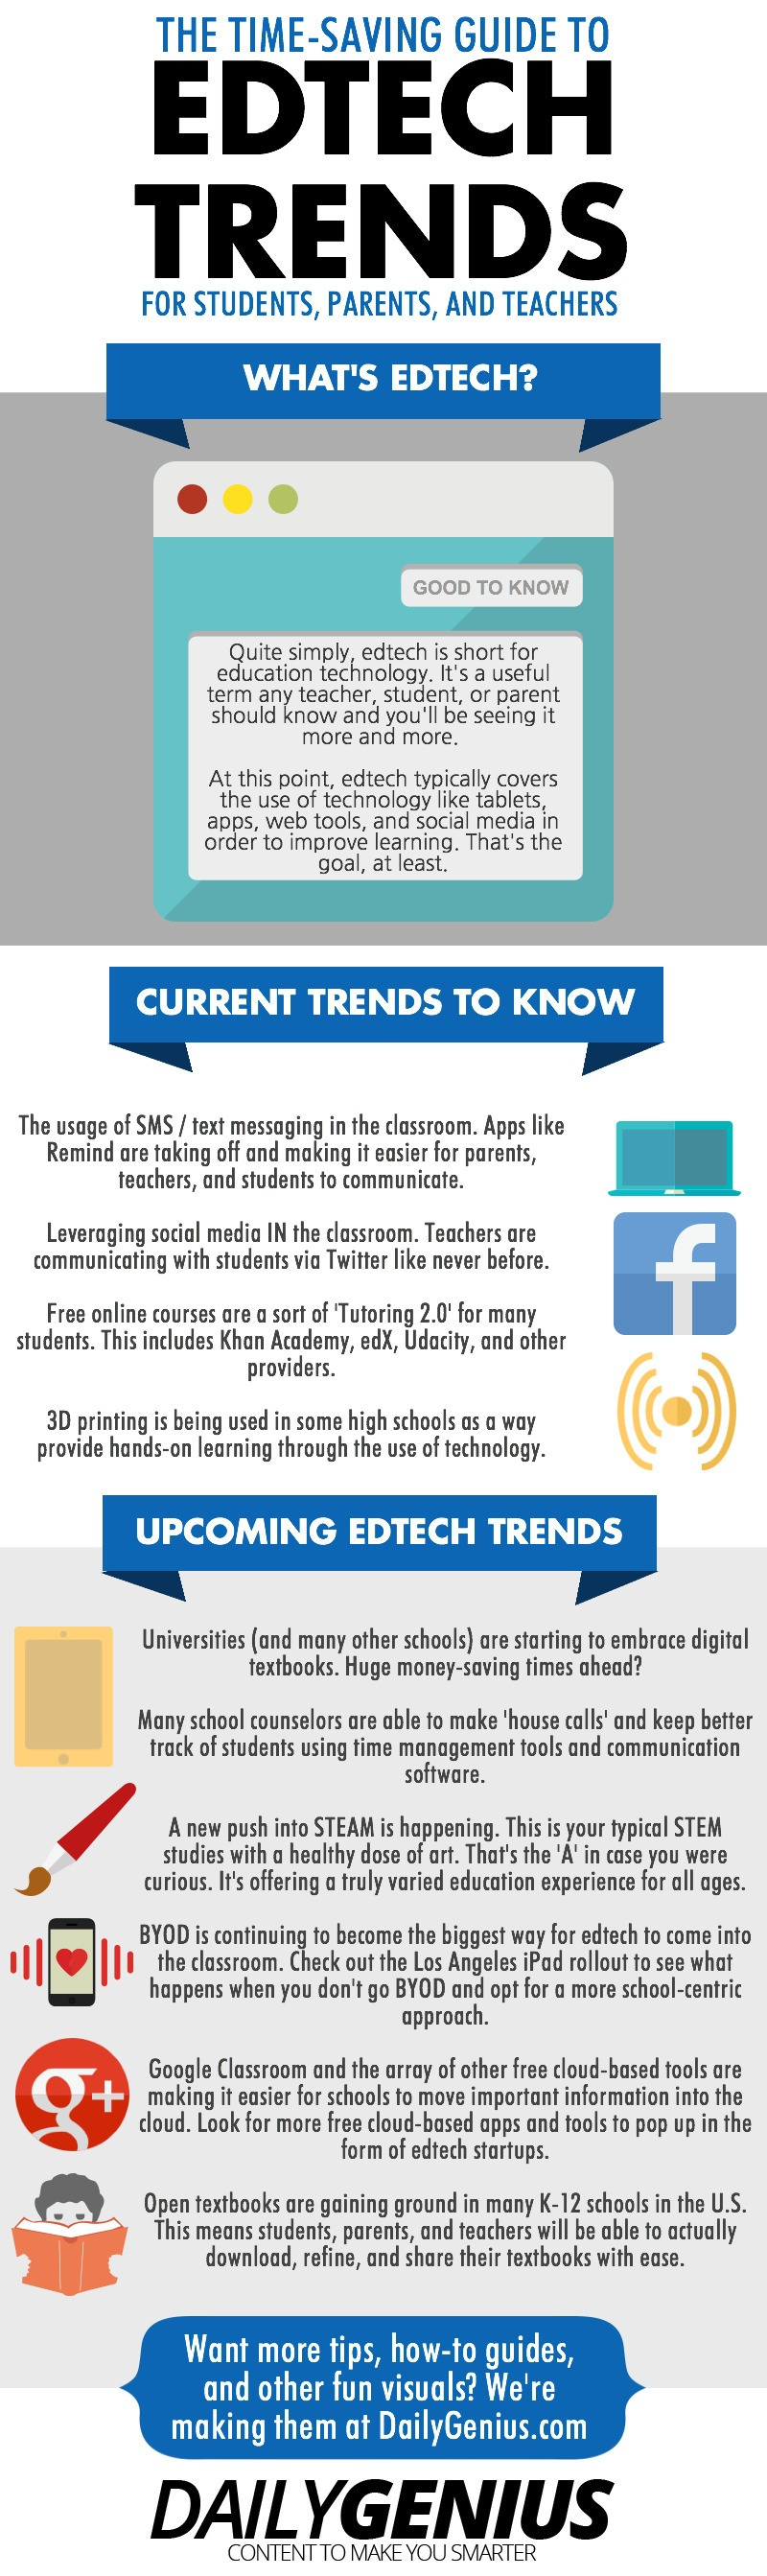 10 Current and Future Edtech Trends Infographic